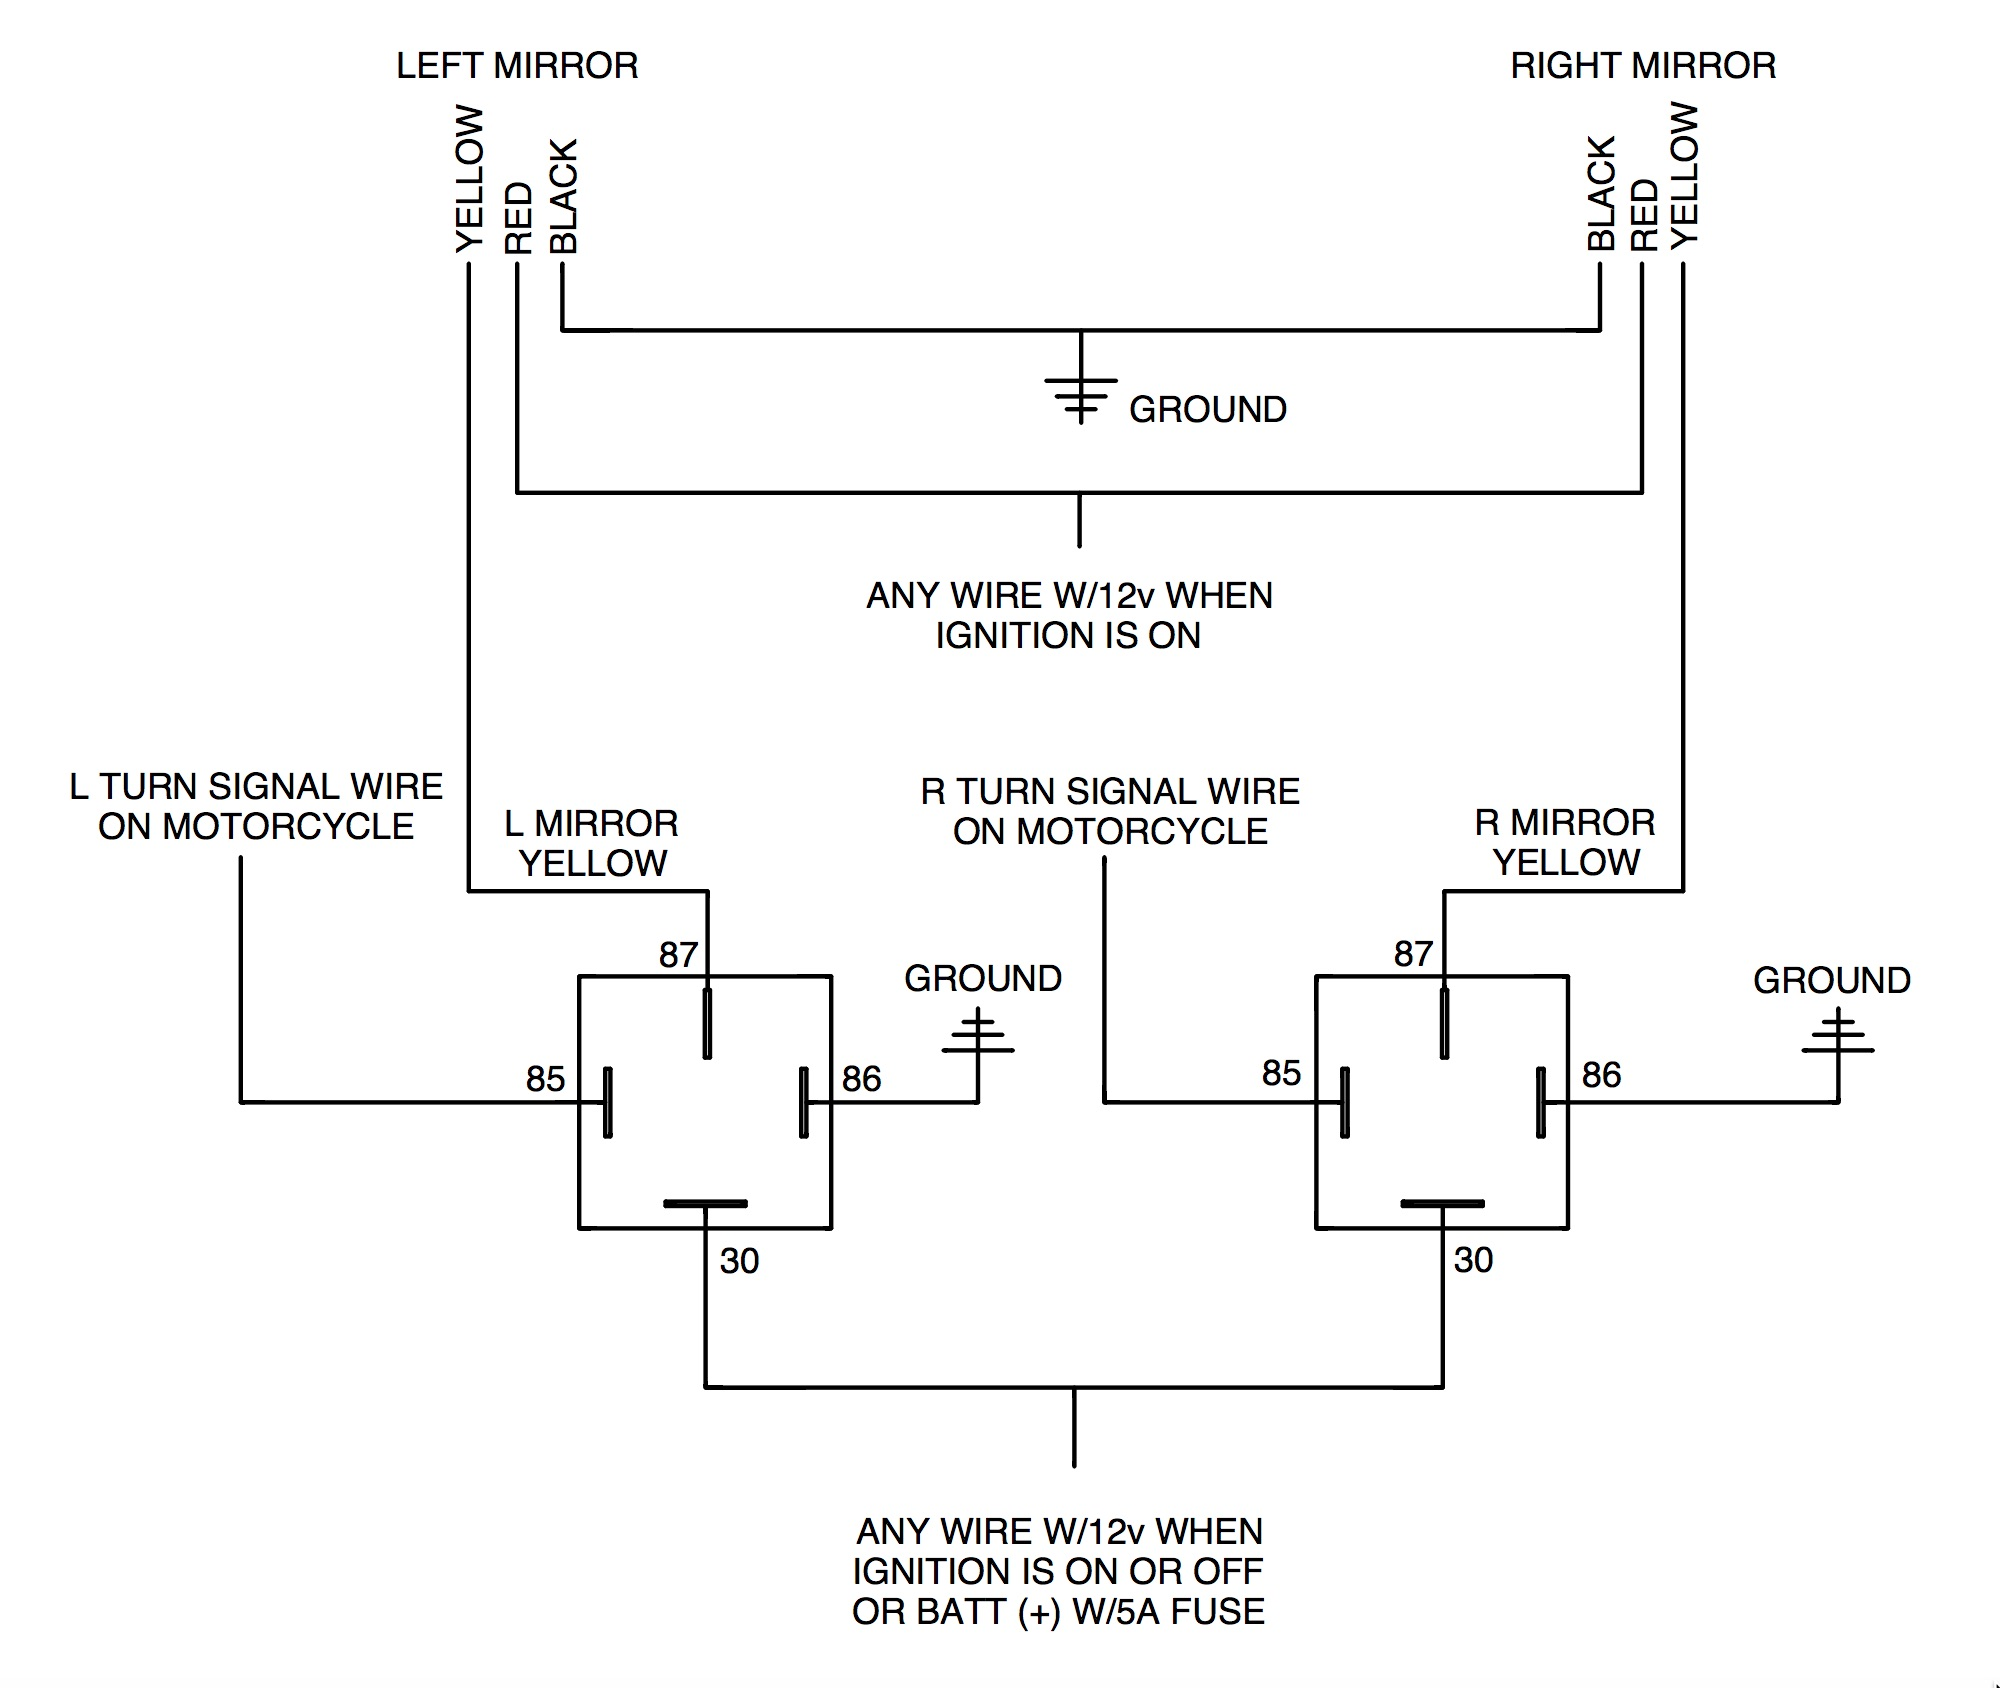 Rivco dual relay diagram adding rivco led mirrors to a victory cross country motorcycle Basic Turn Signal Wiring Diagram at gsmportal.co